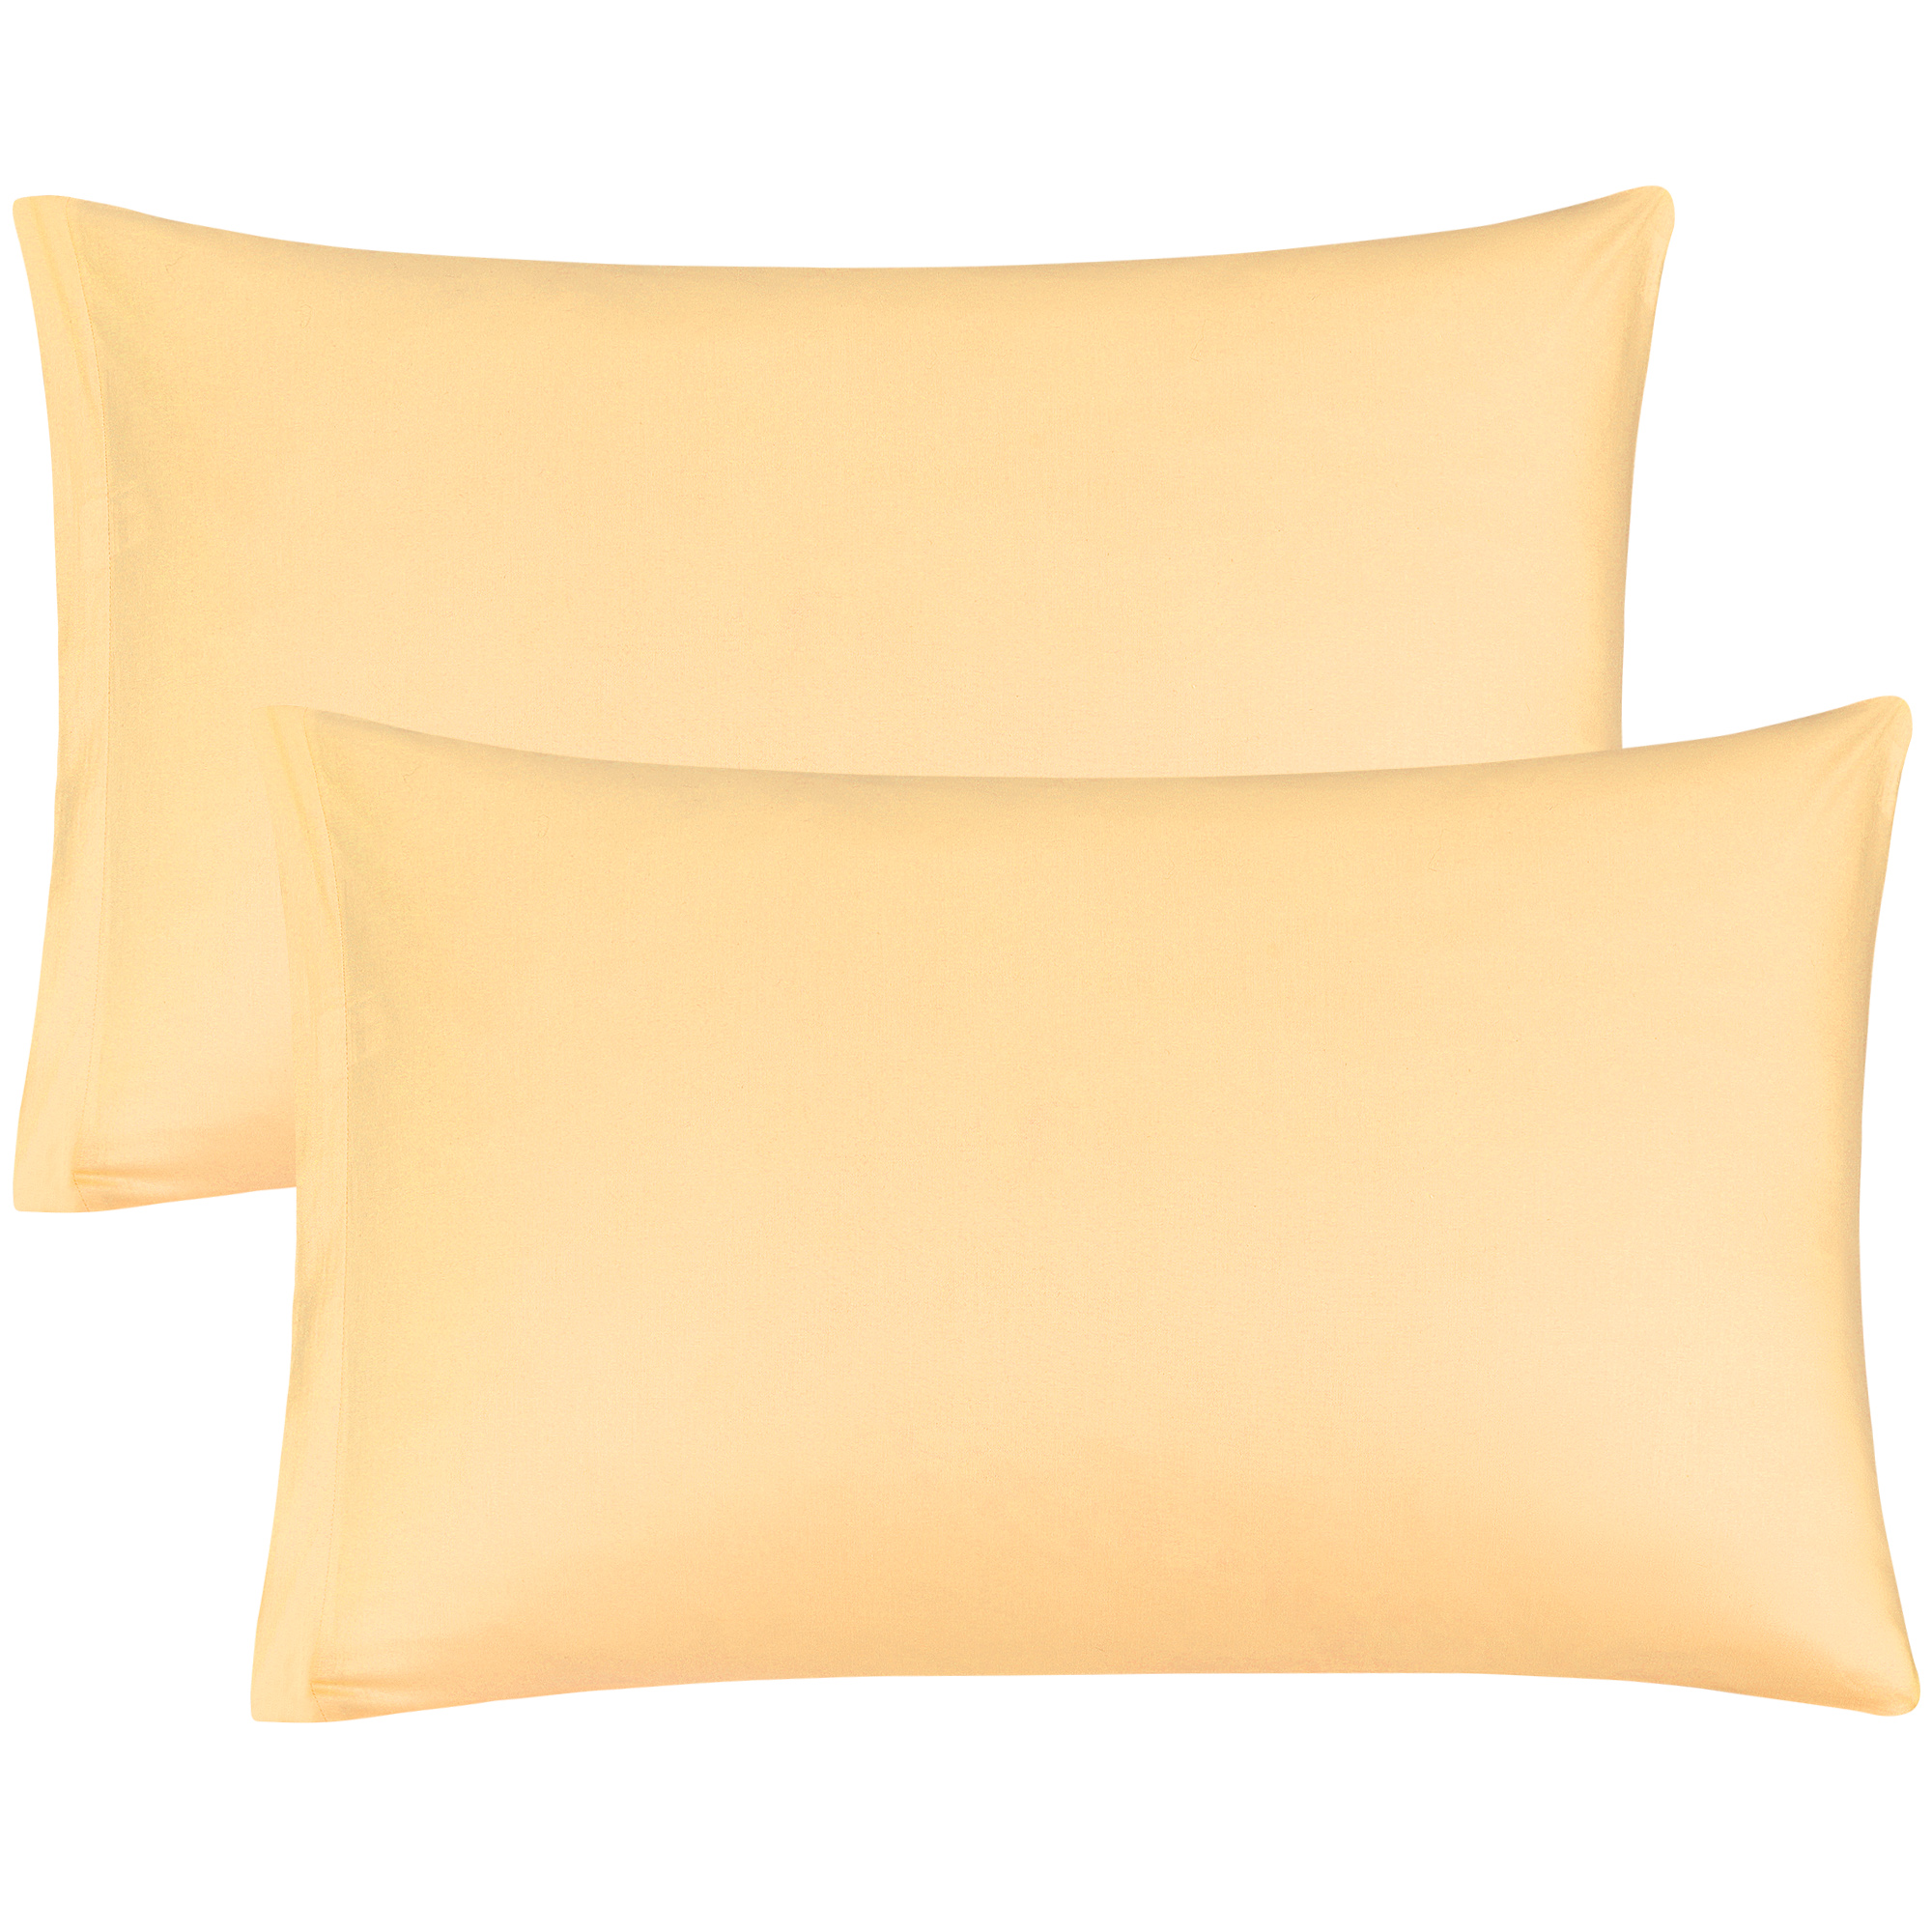 Zippered Pillow Cases Pillowcases Egyptian Cotton (20 x 30 Inch, Yellow) 2-Pack